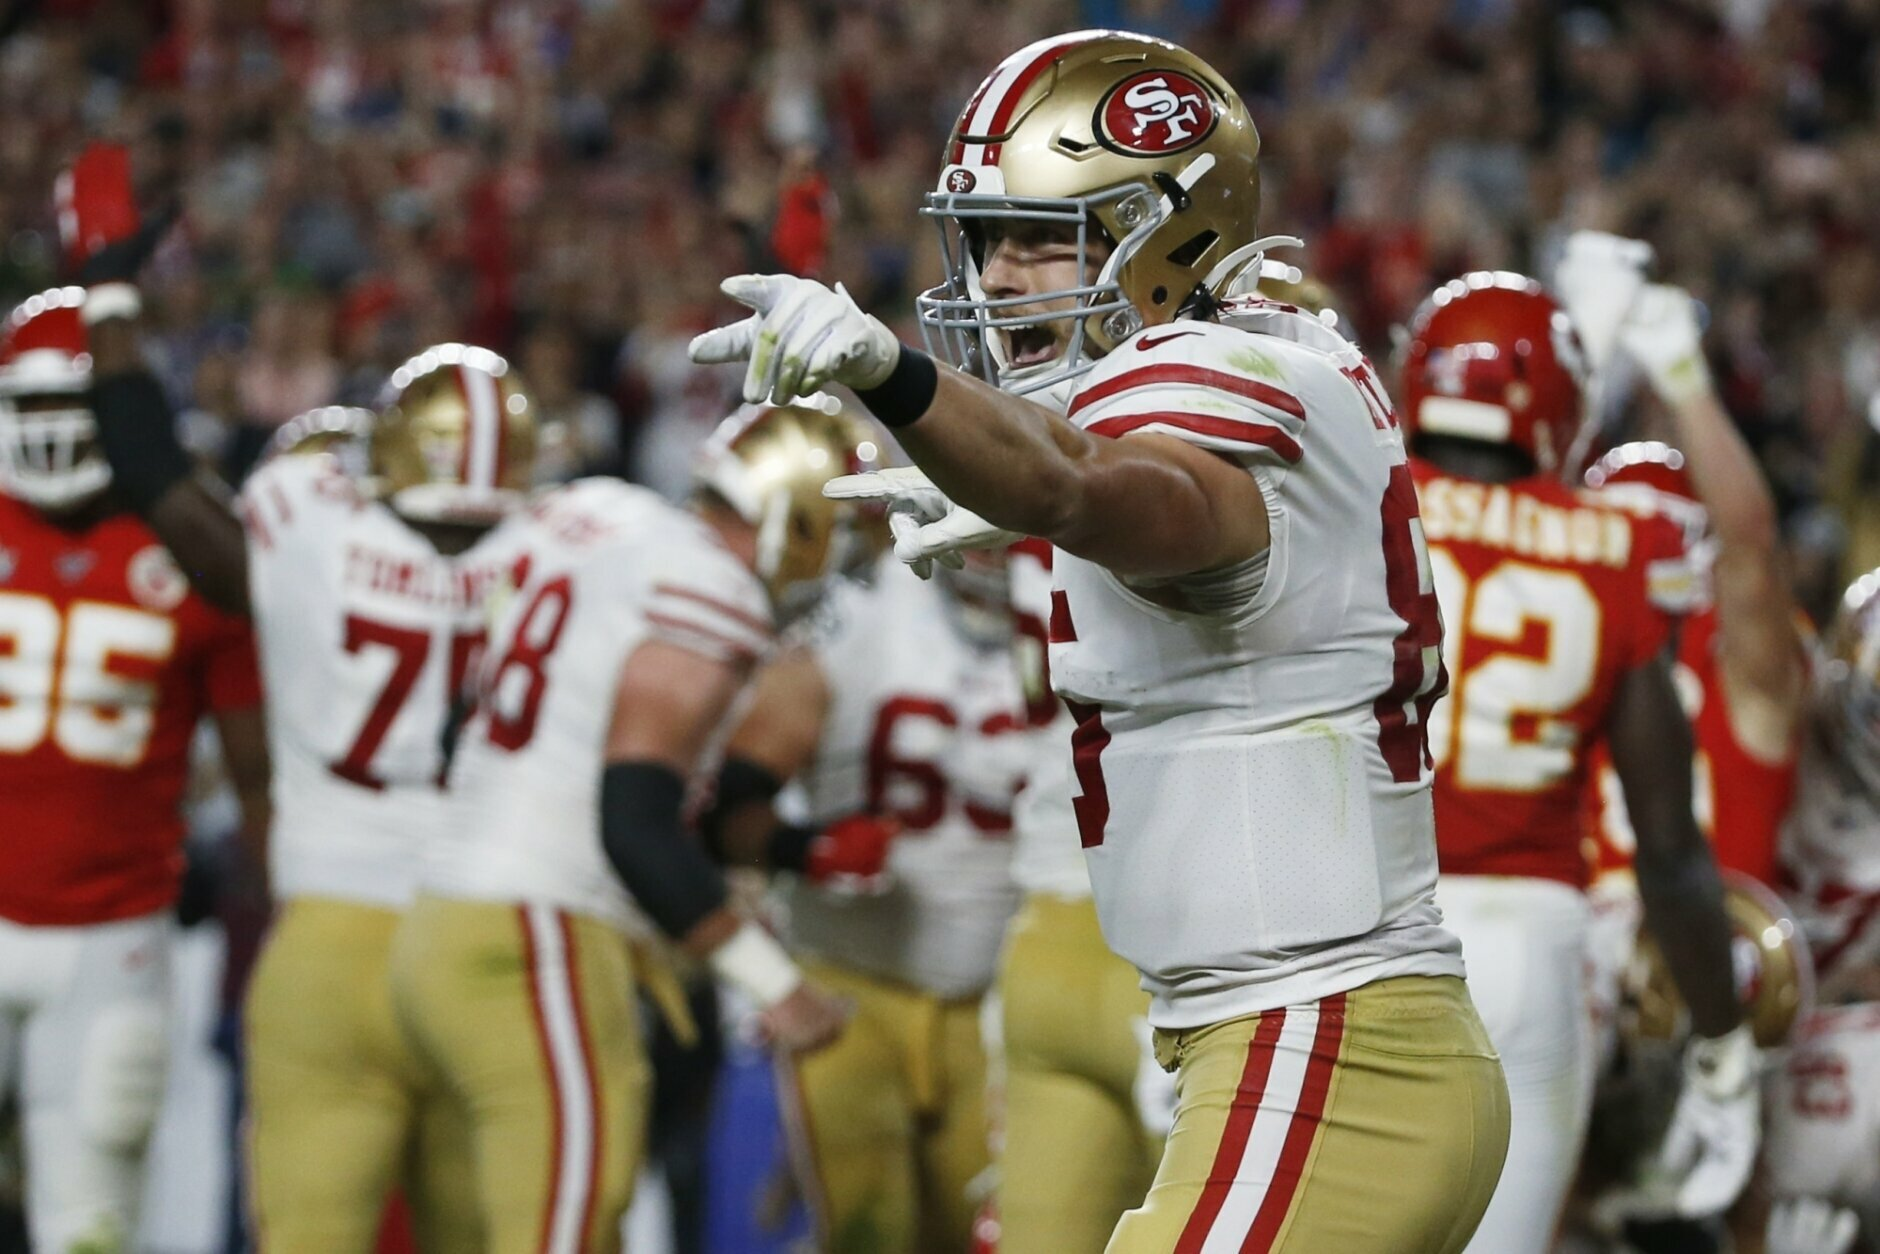 San Francisco 49ers' George Kittle celebrates after Raheem Mostert scored against the Kansas City Chiefs during the second half of the NFL Super Bowl 54 football game Sunday, Feb. 2, 2020, in Miami Gardens, Fla. (AP Photo/Mark Humphrey)